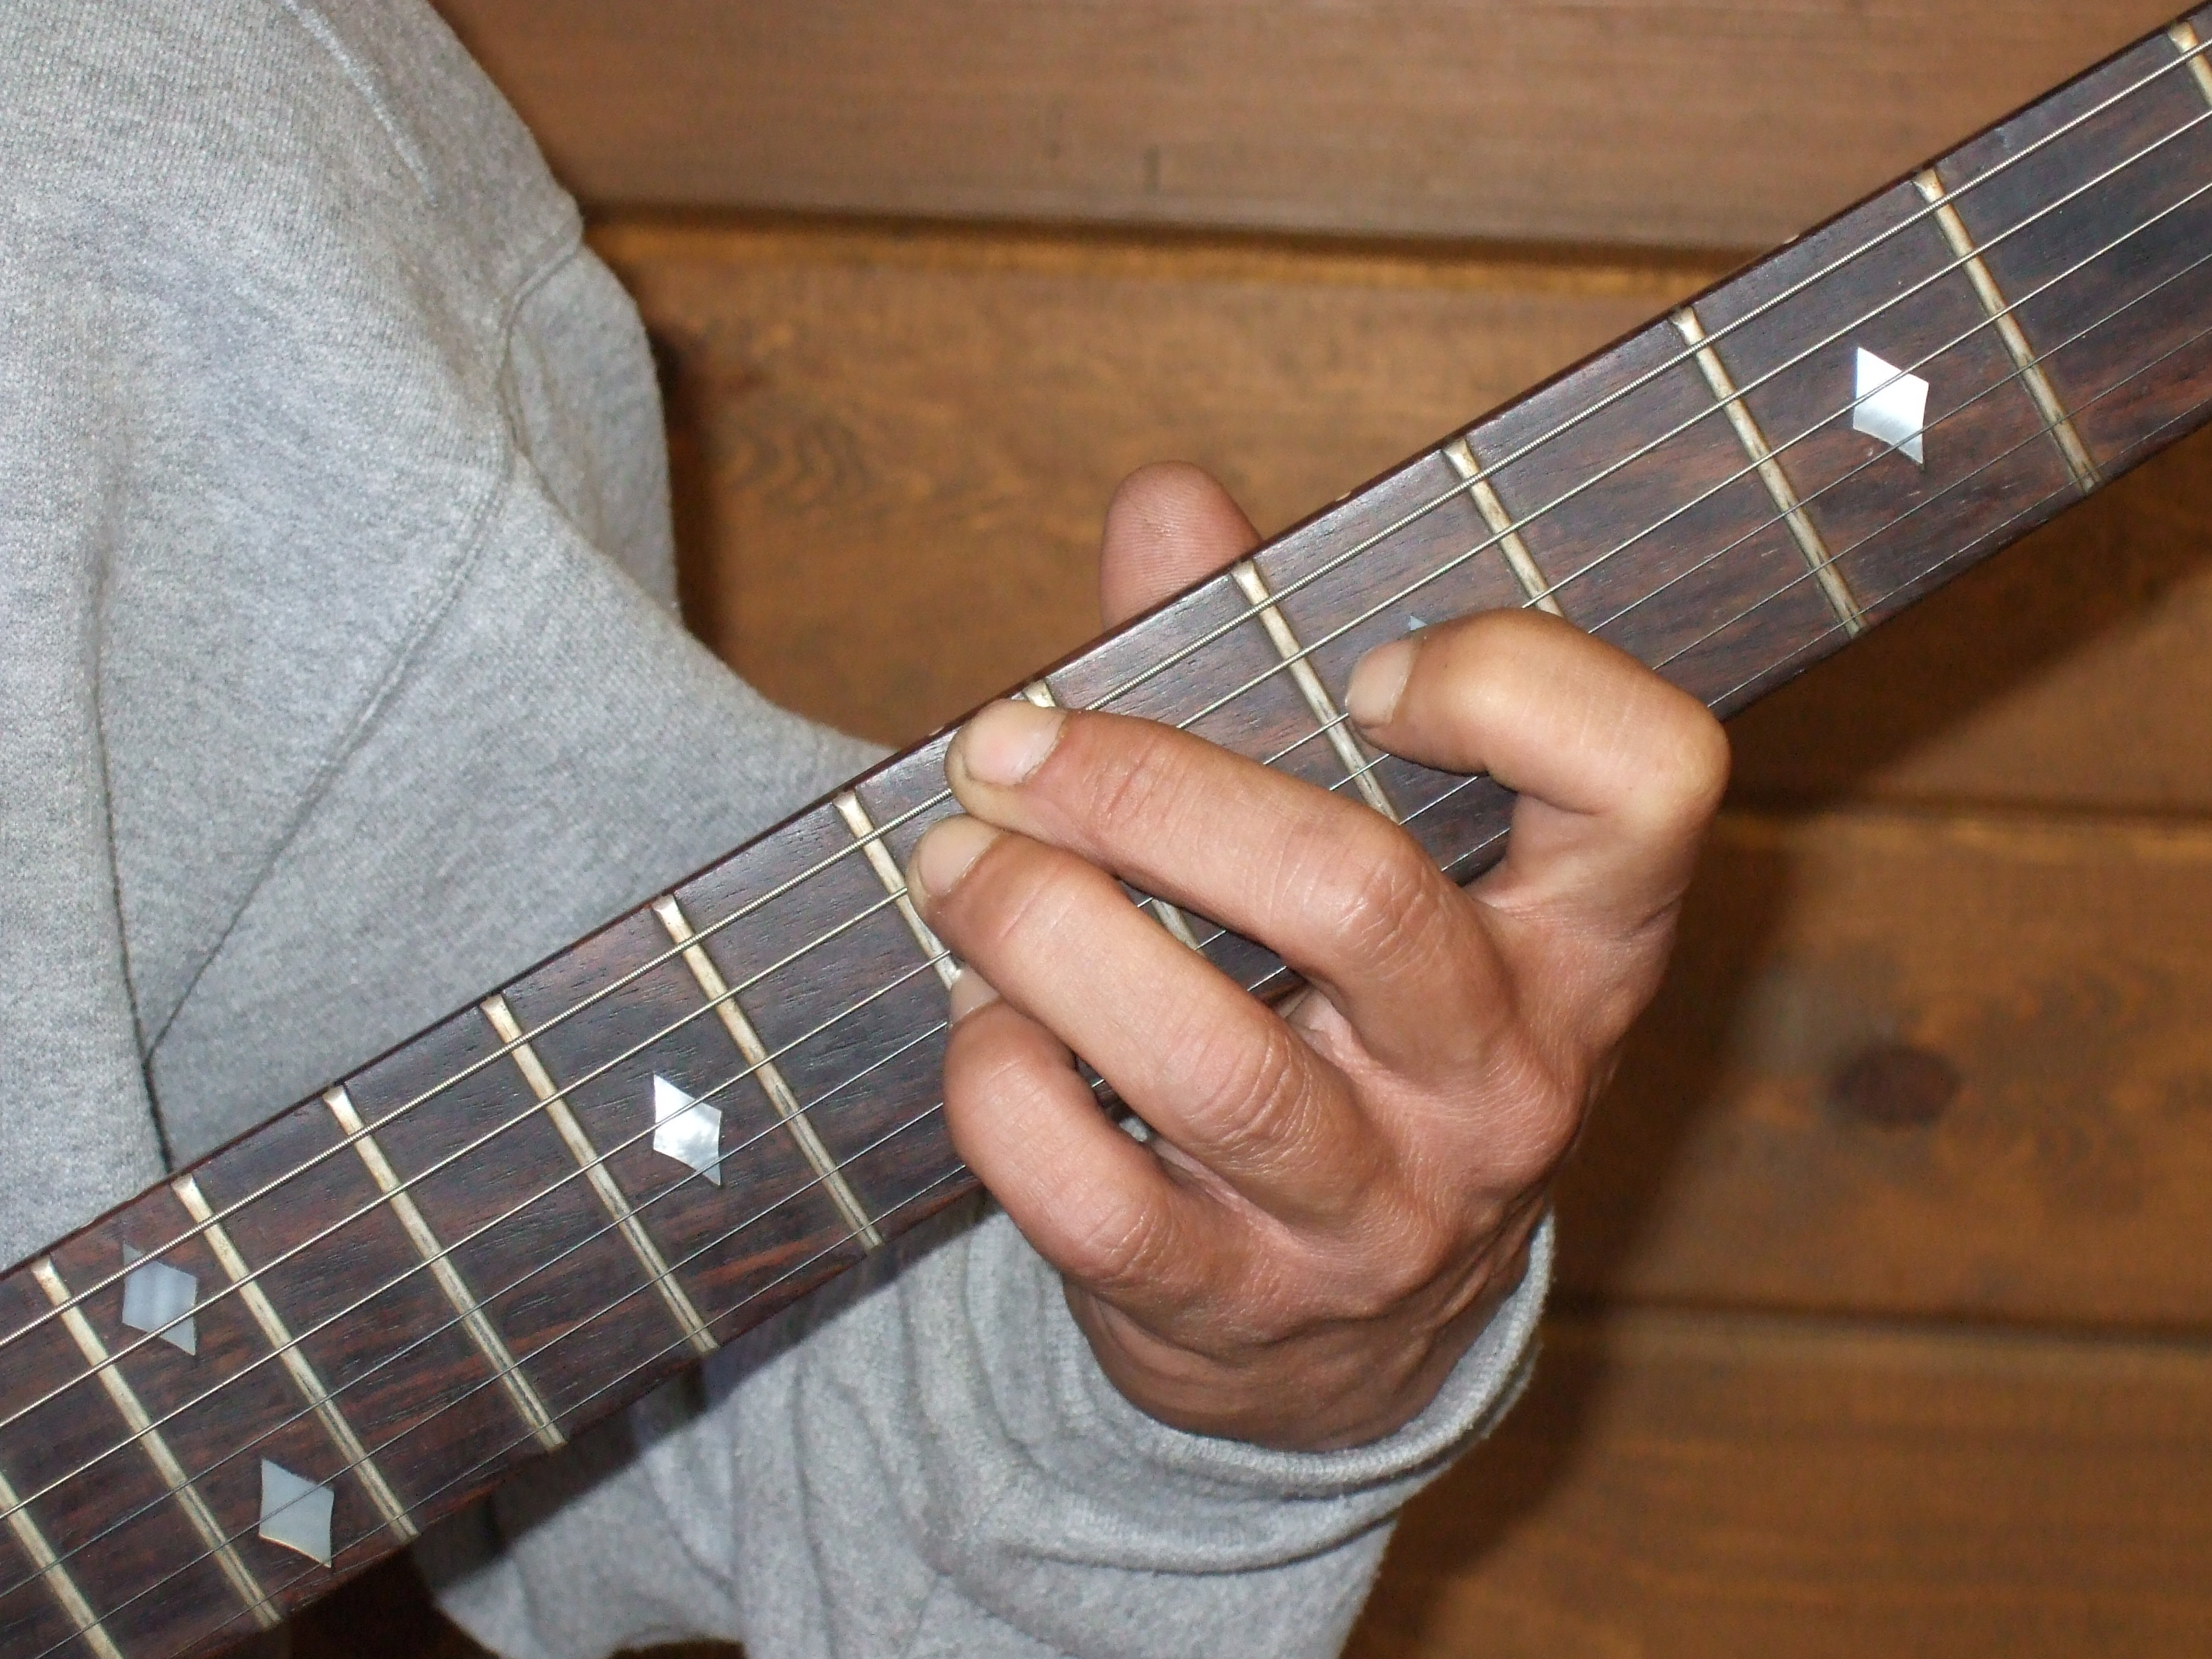 An indepth look at D chord guitar patterns including different types of D chords resulting progressions and advanced voicings